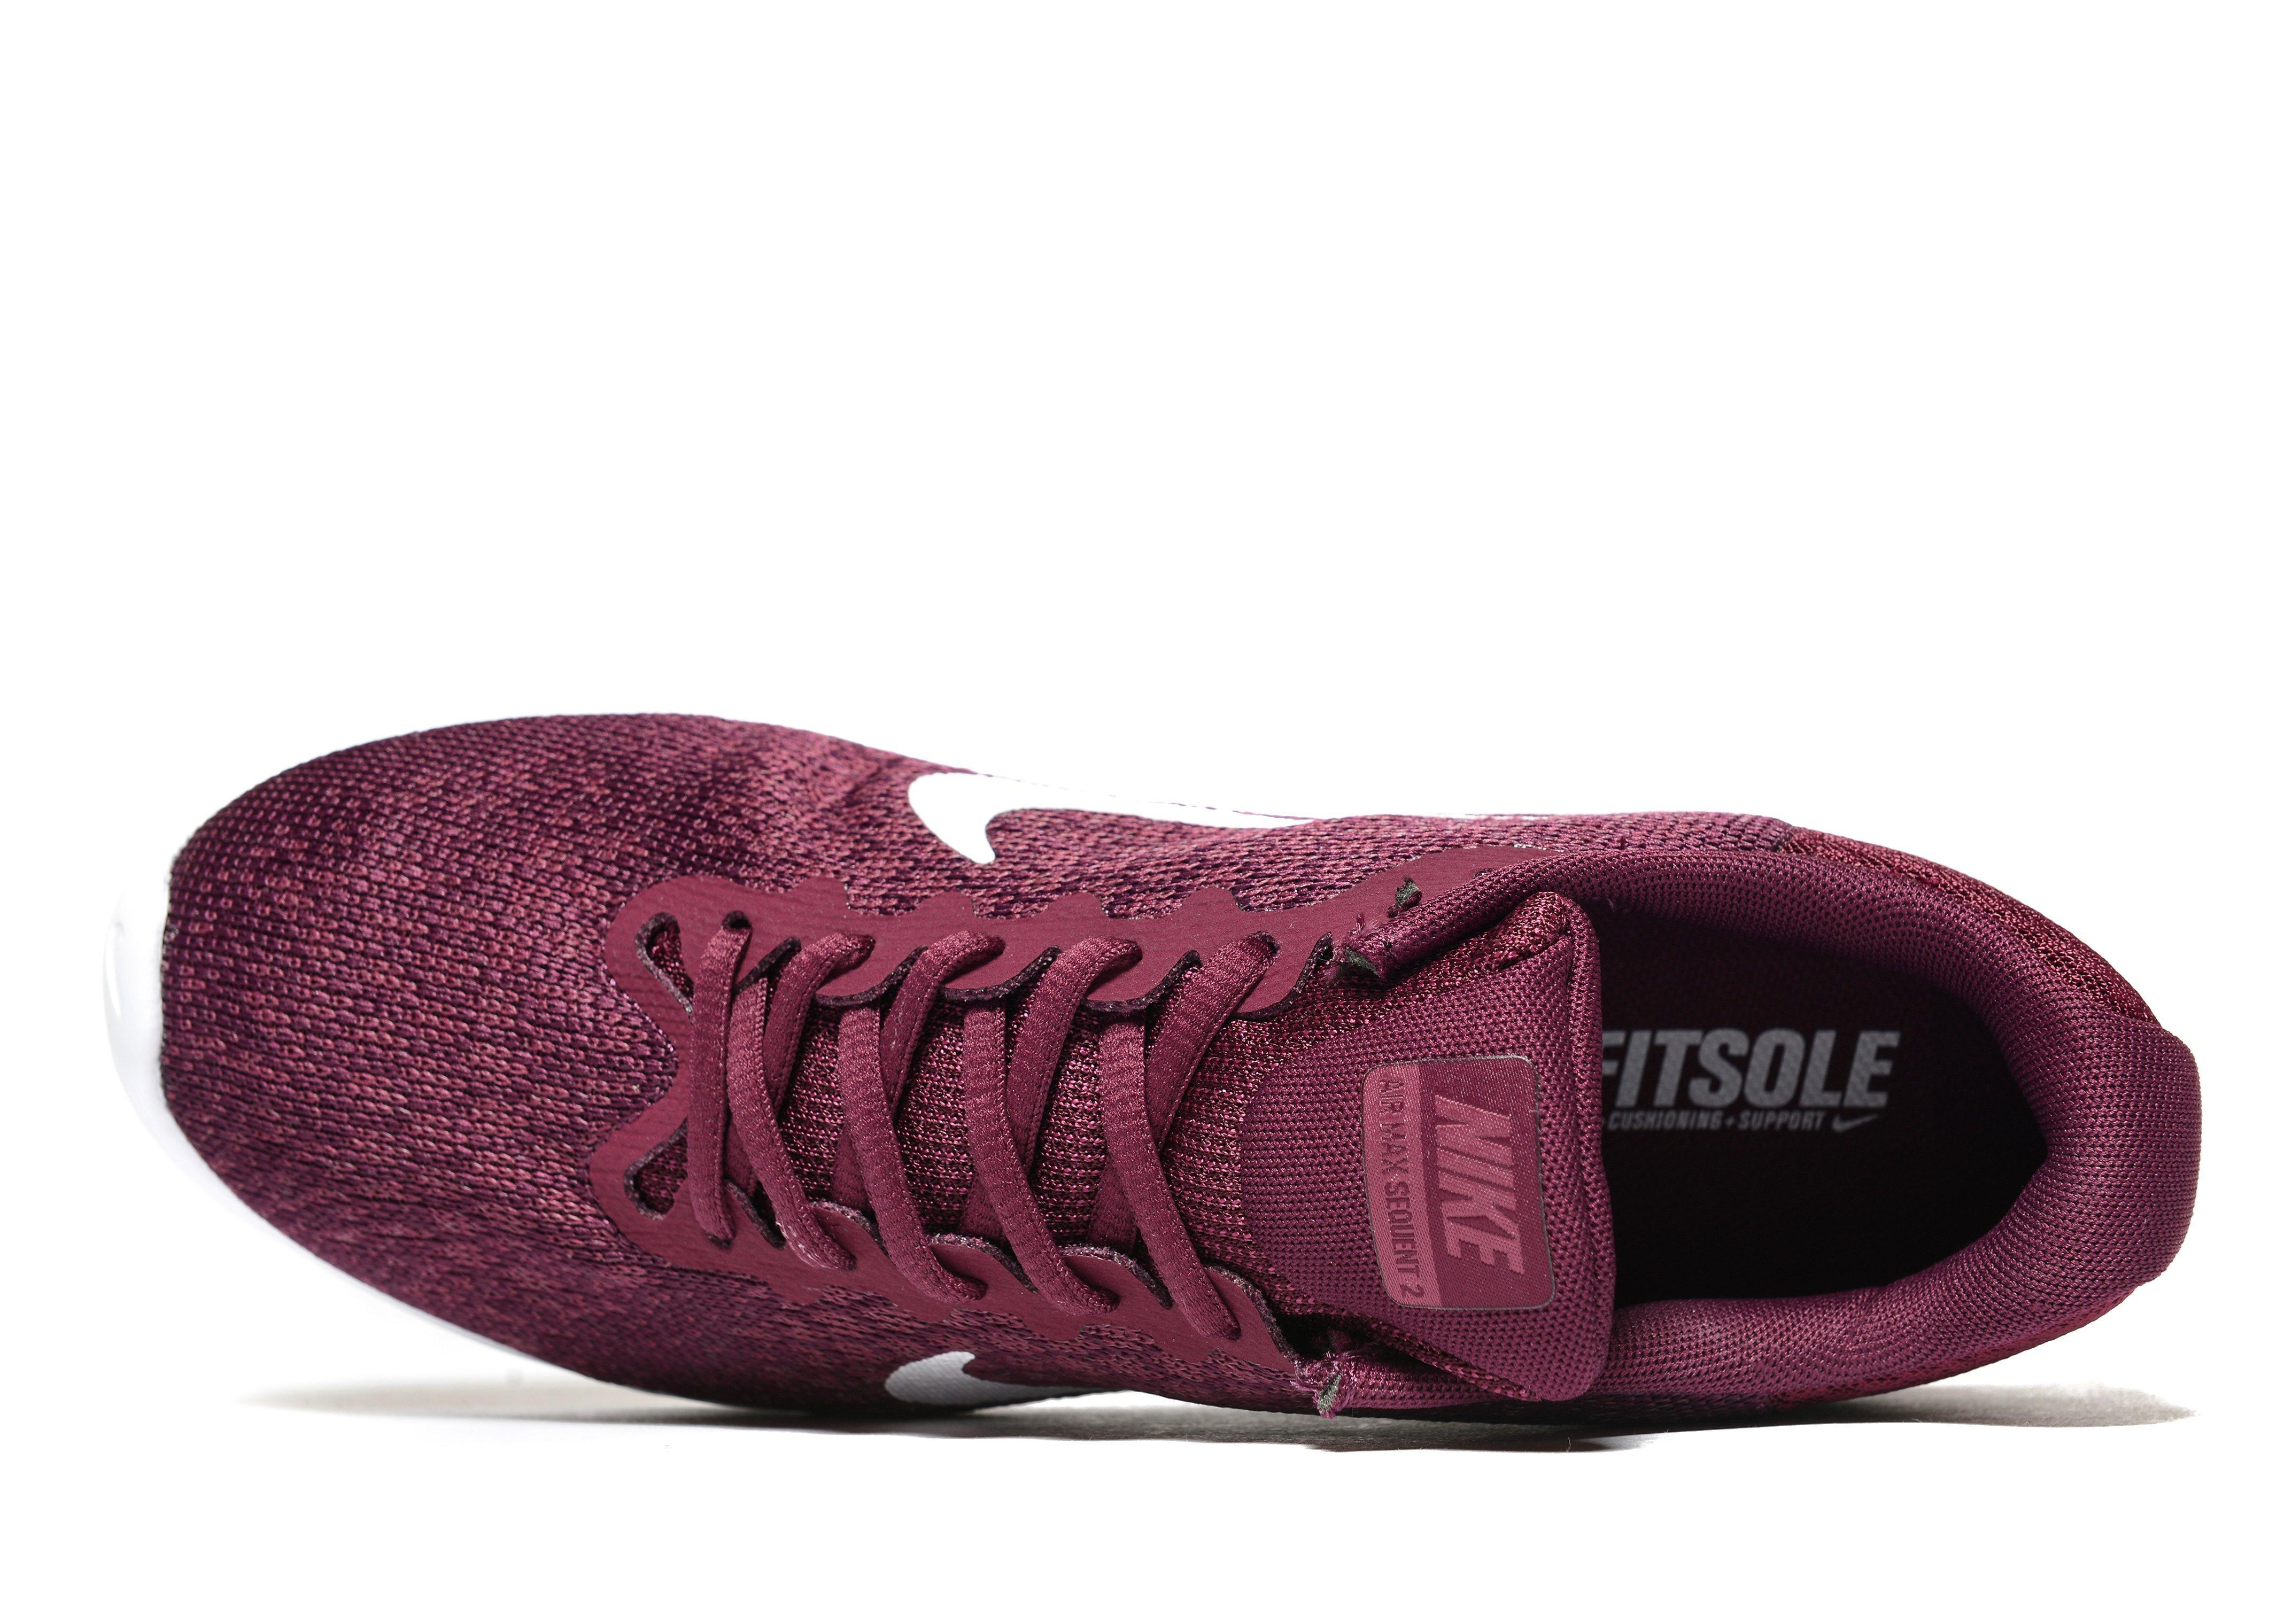 be43ef91f4 Gallery. Previously sold at: JD Sports · Women's Nike Air Max